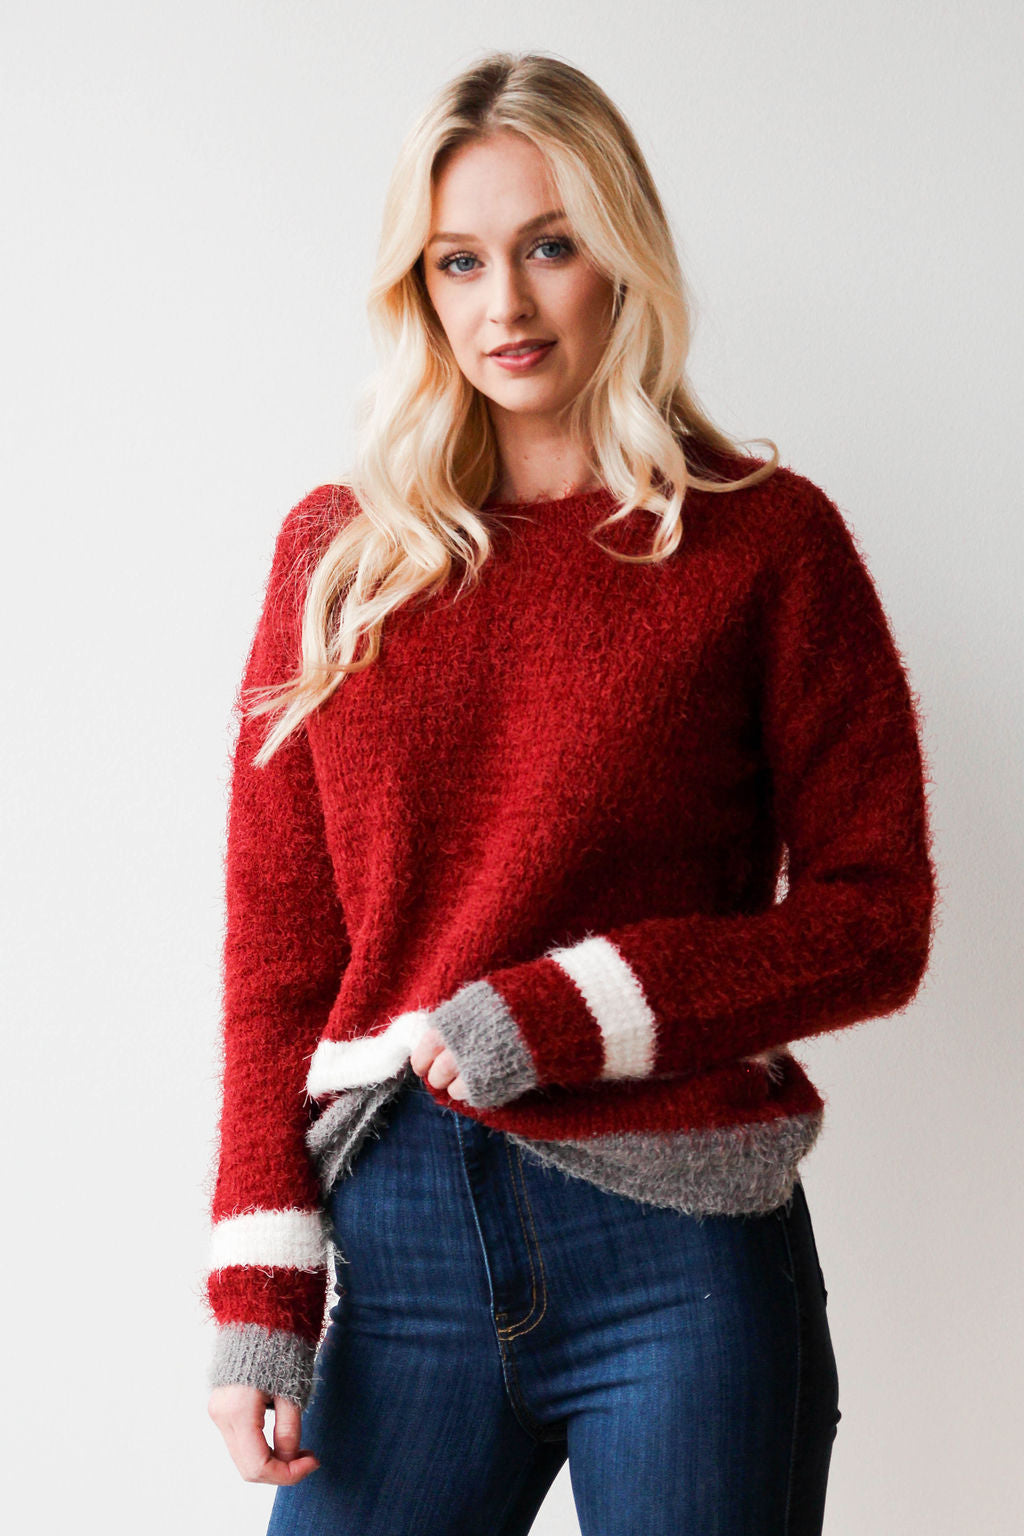 cinnamon and sugar sweater